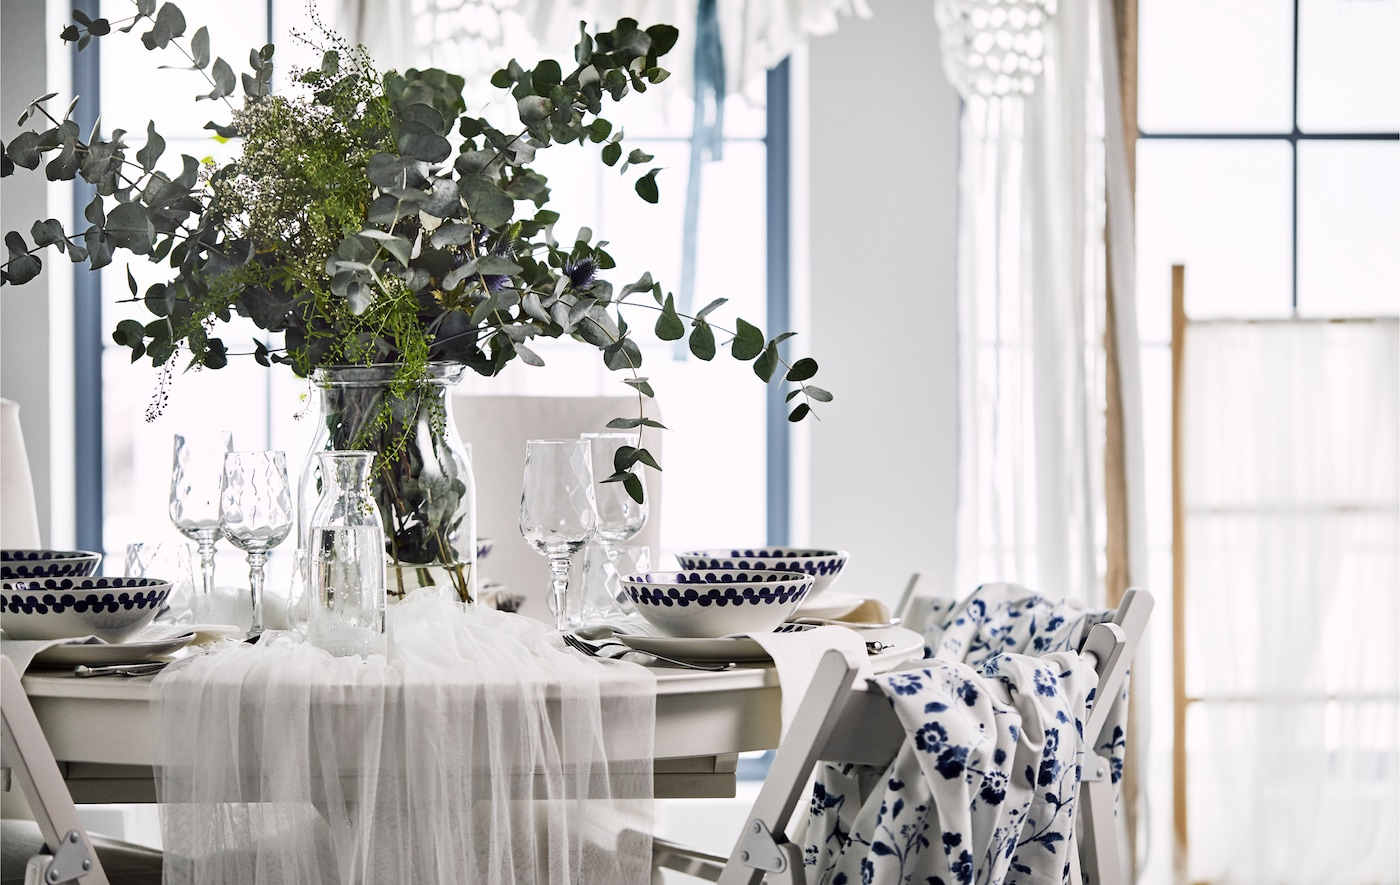 A romantic table setting with white tulle draped over a round table and a vase with wild flowers and eucalyptus leaves.